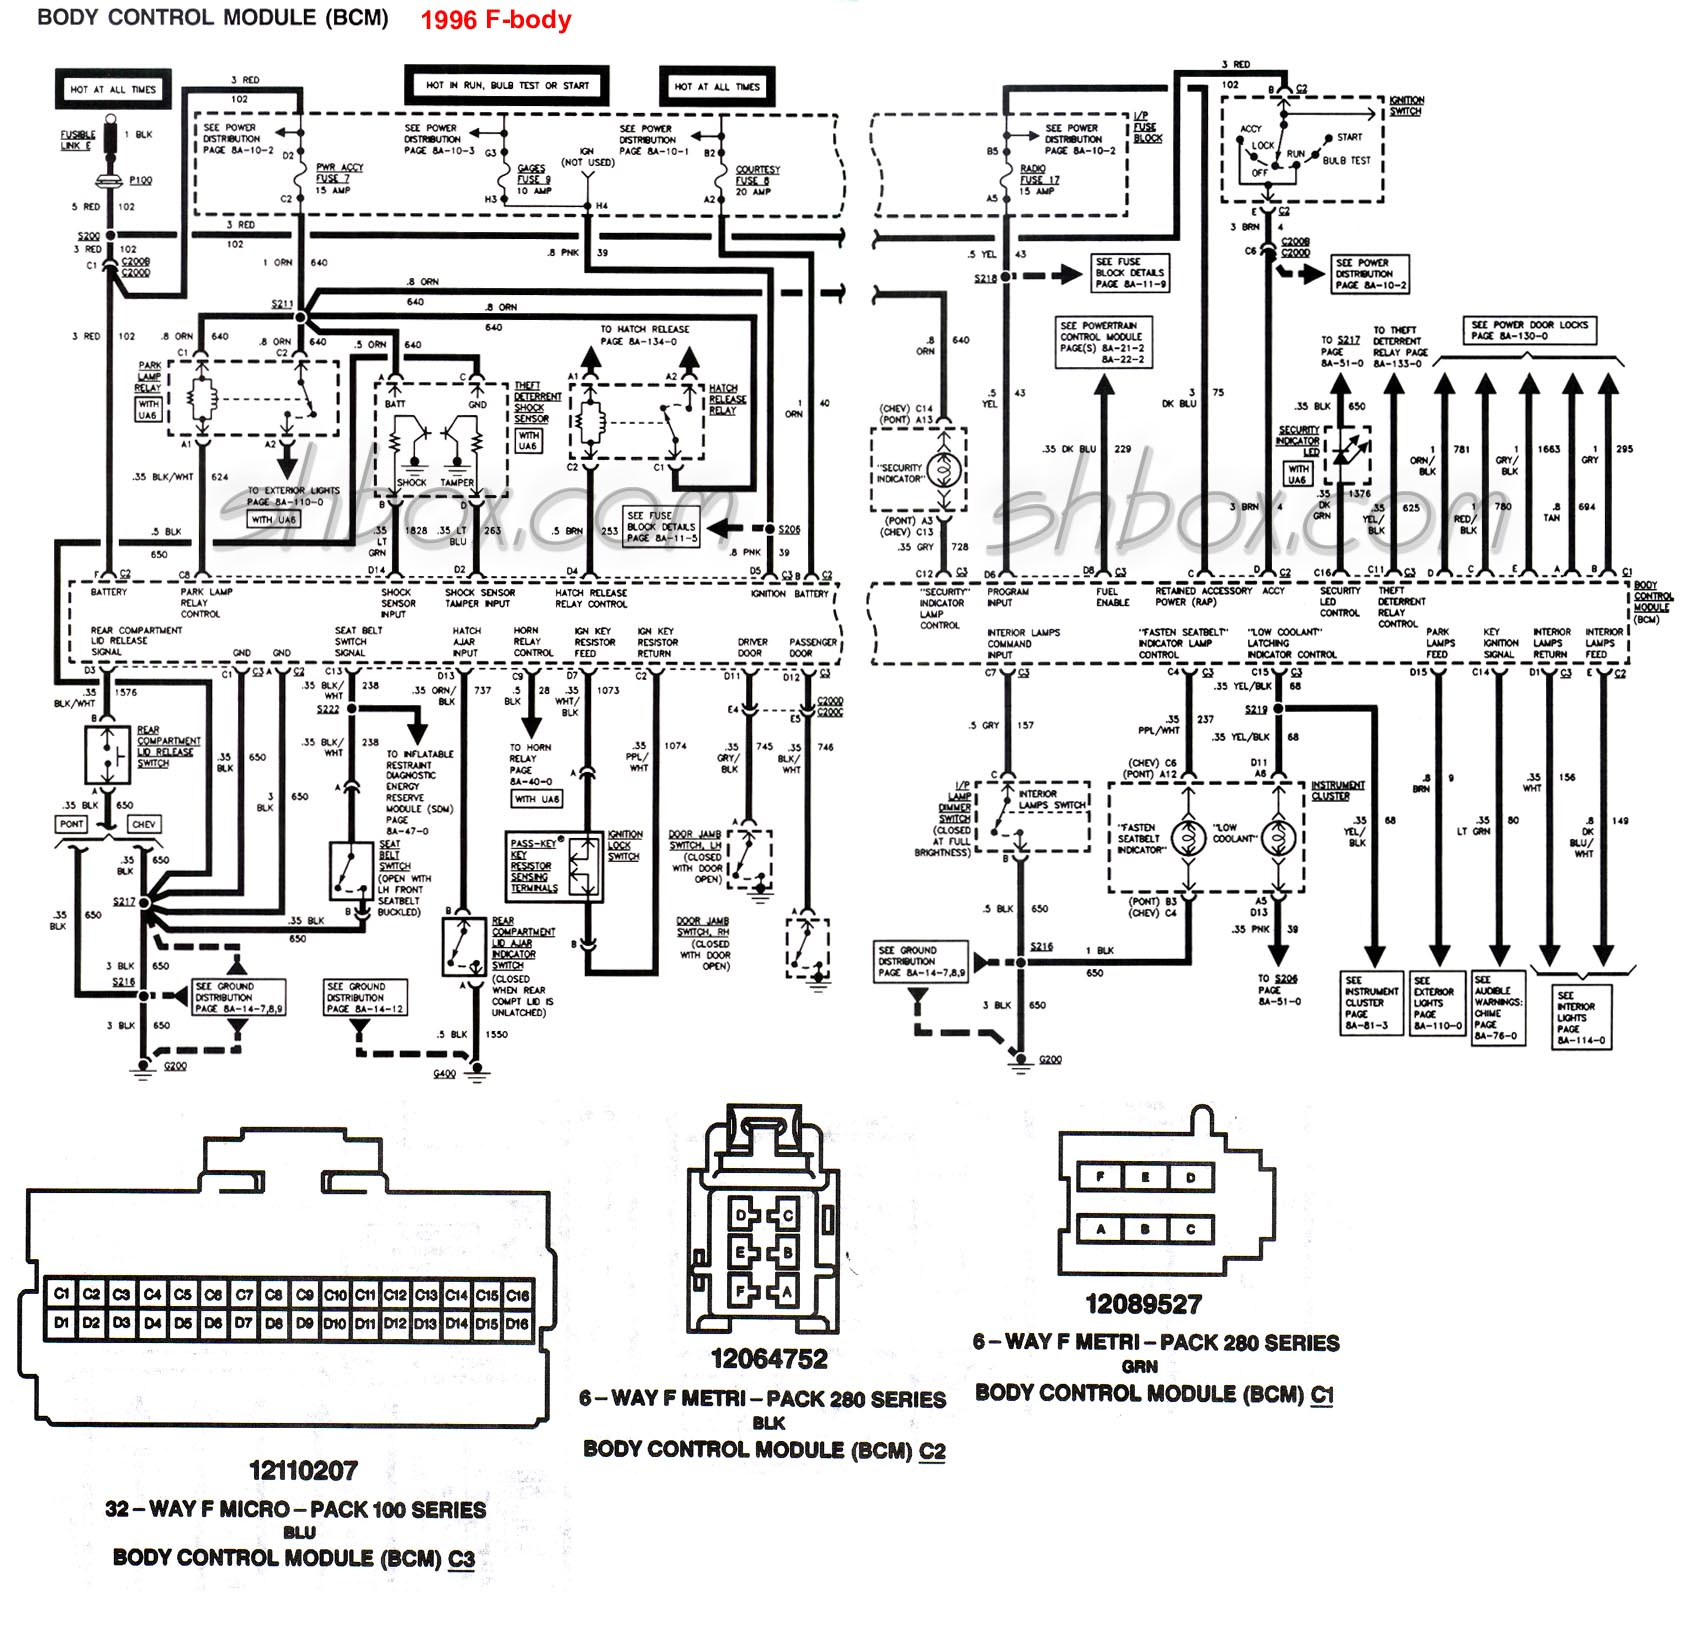 2000 Chevy 1500 4 8 Instrument Panel Wiring Diagram.html